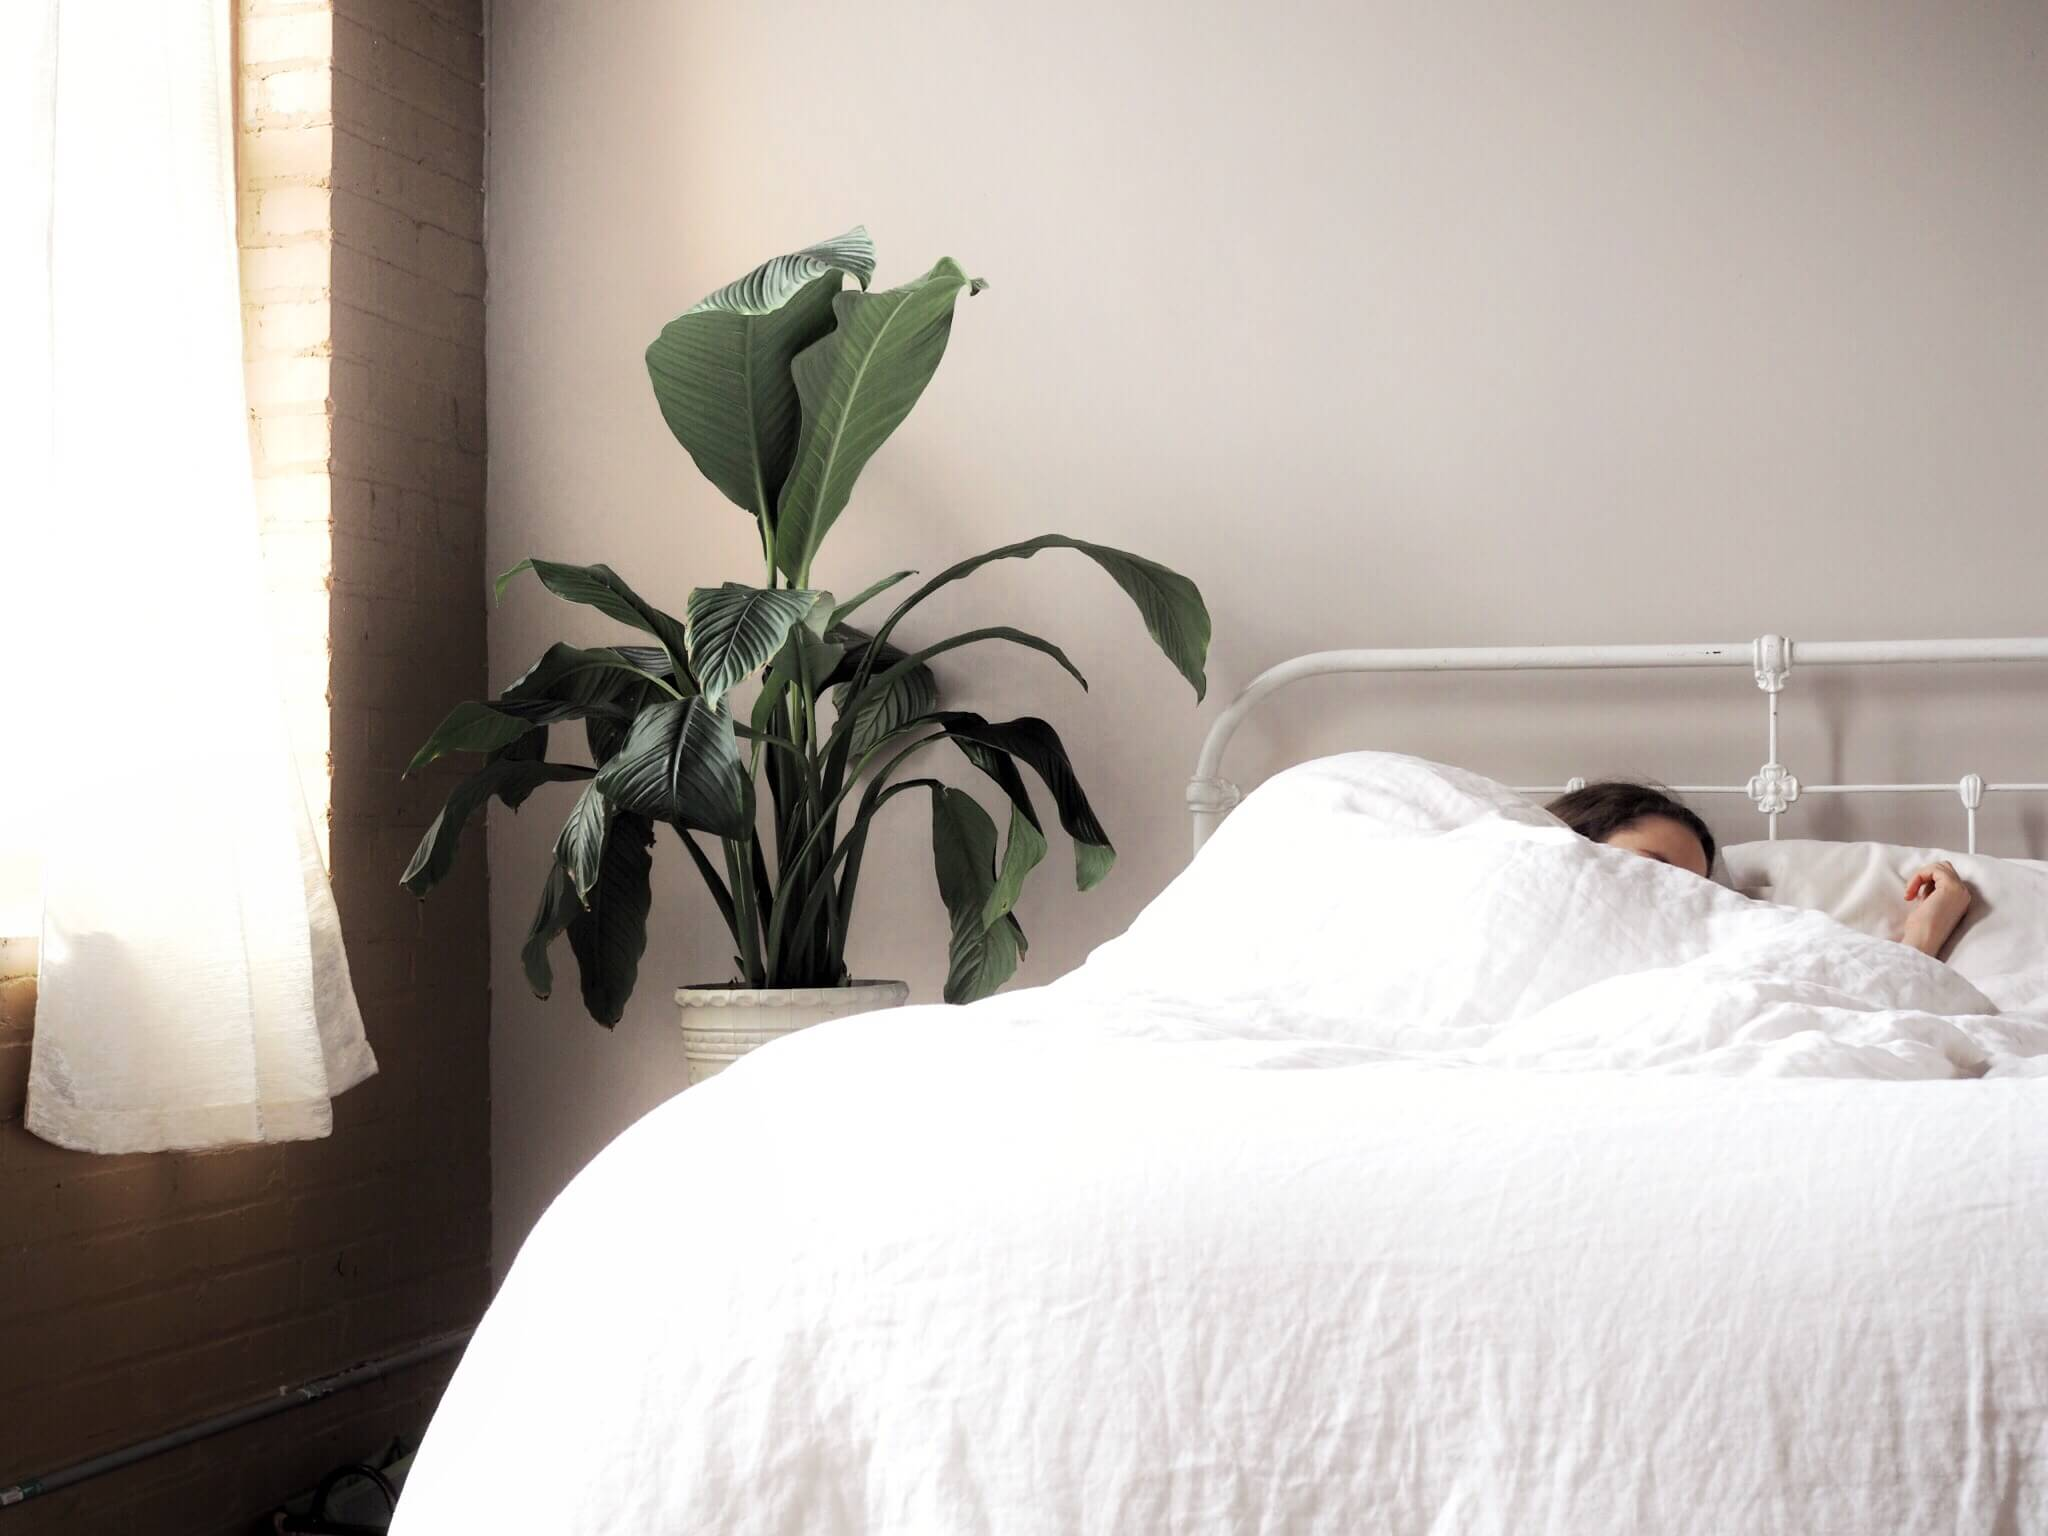 Should You Keep Plants in Your Bedroom